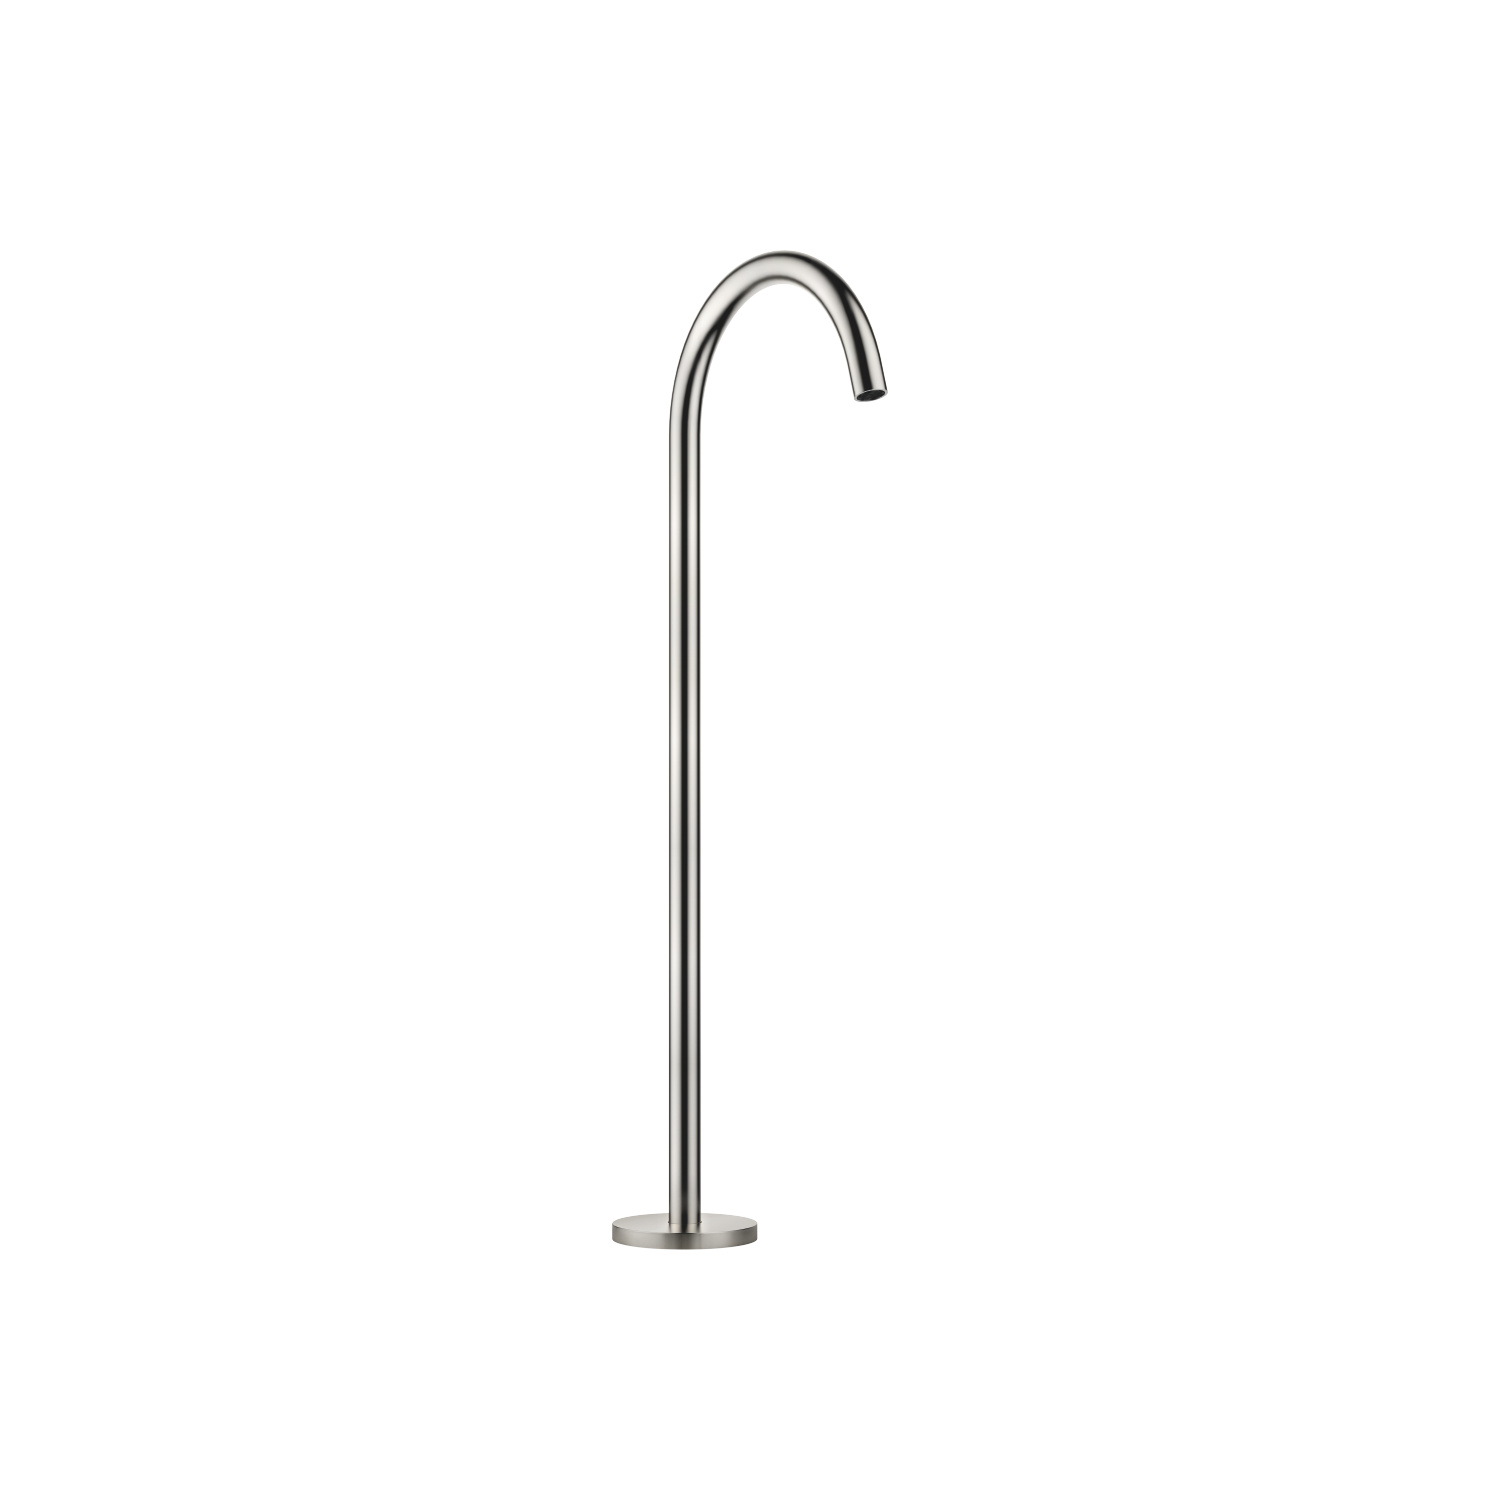 bath spout without diverter for free-standing assembly - platinum matt